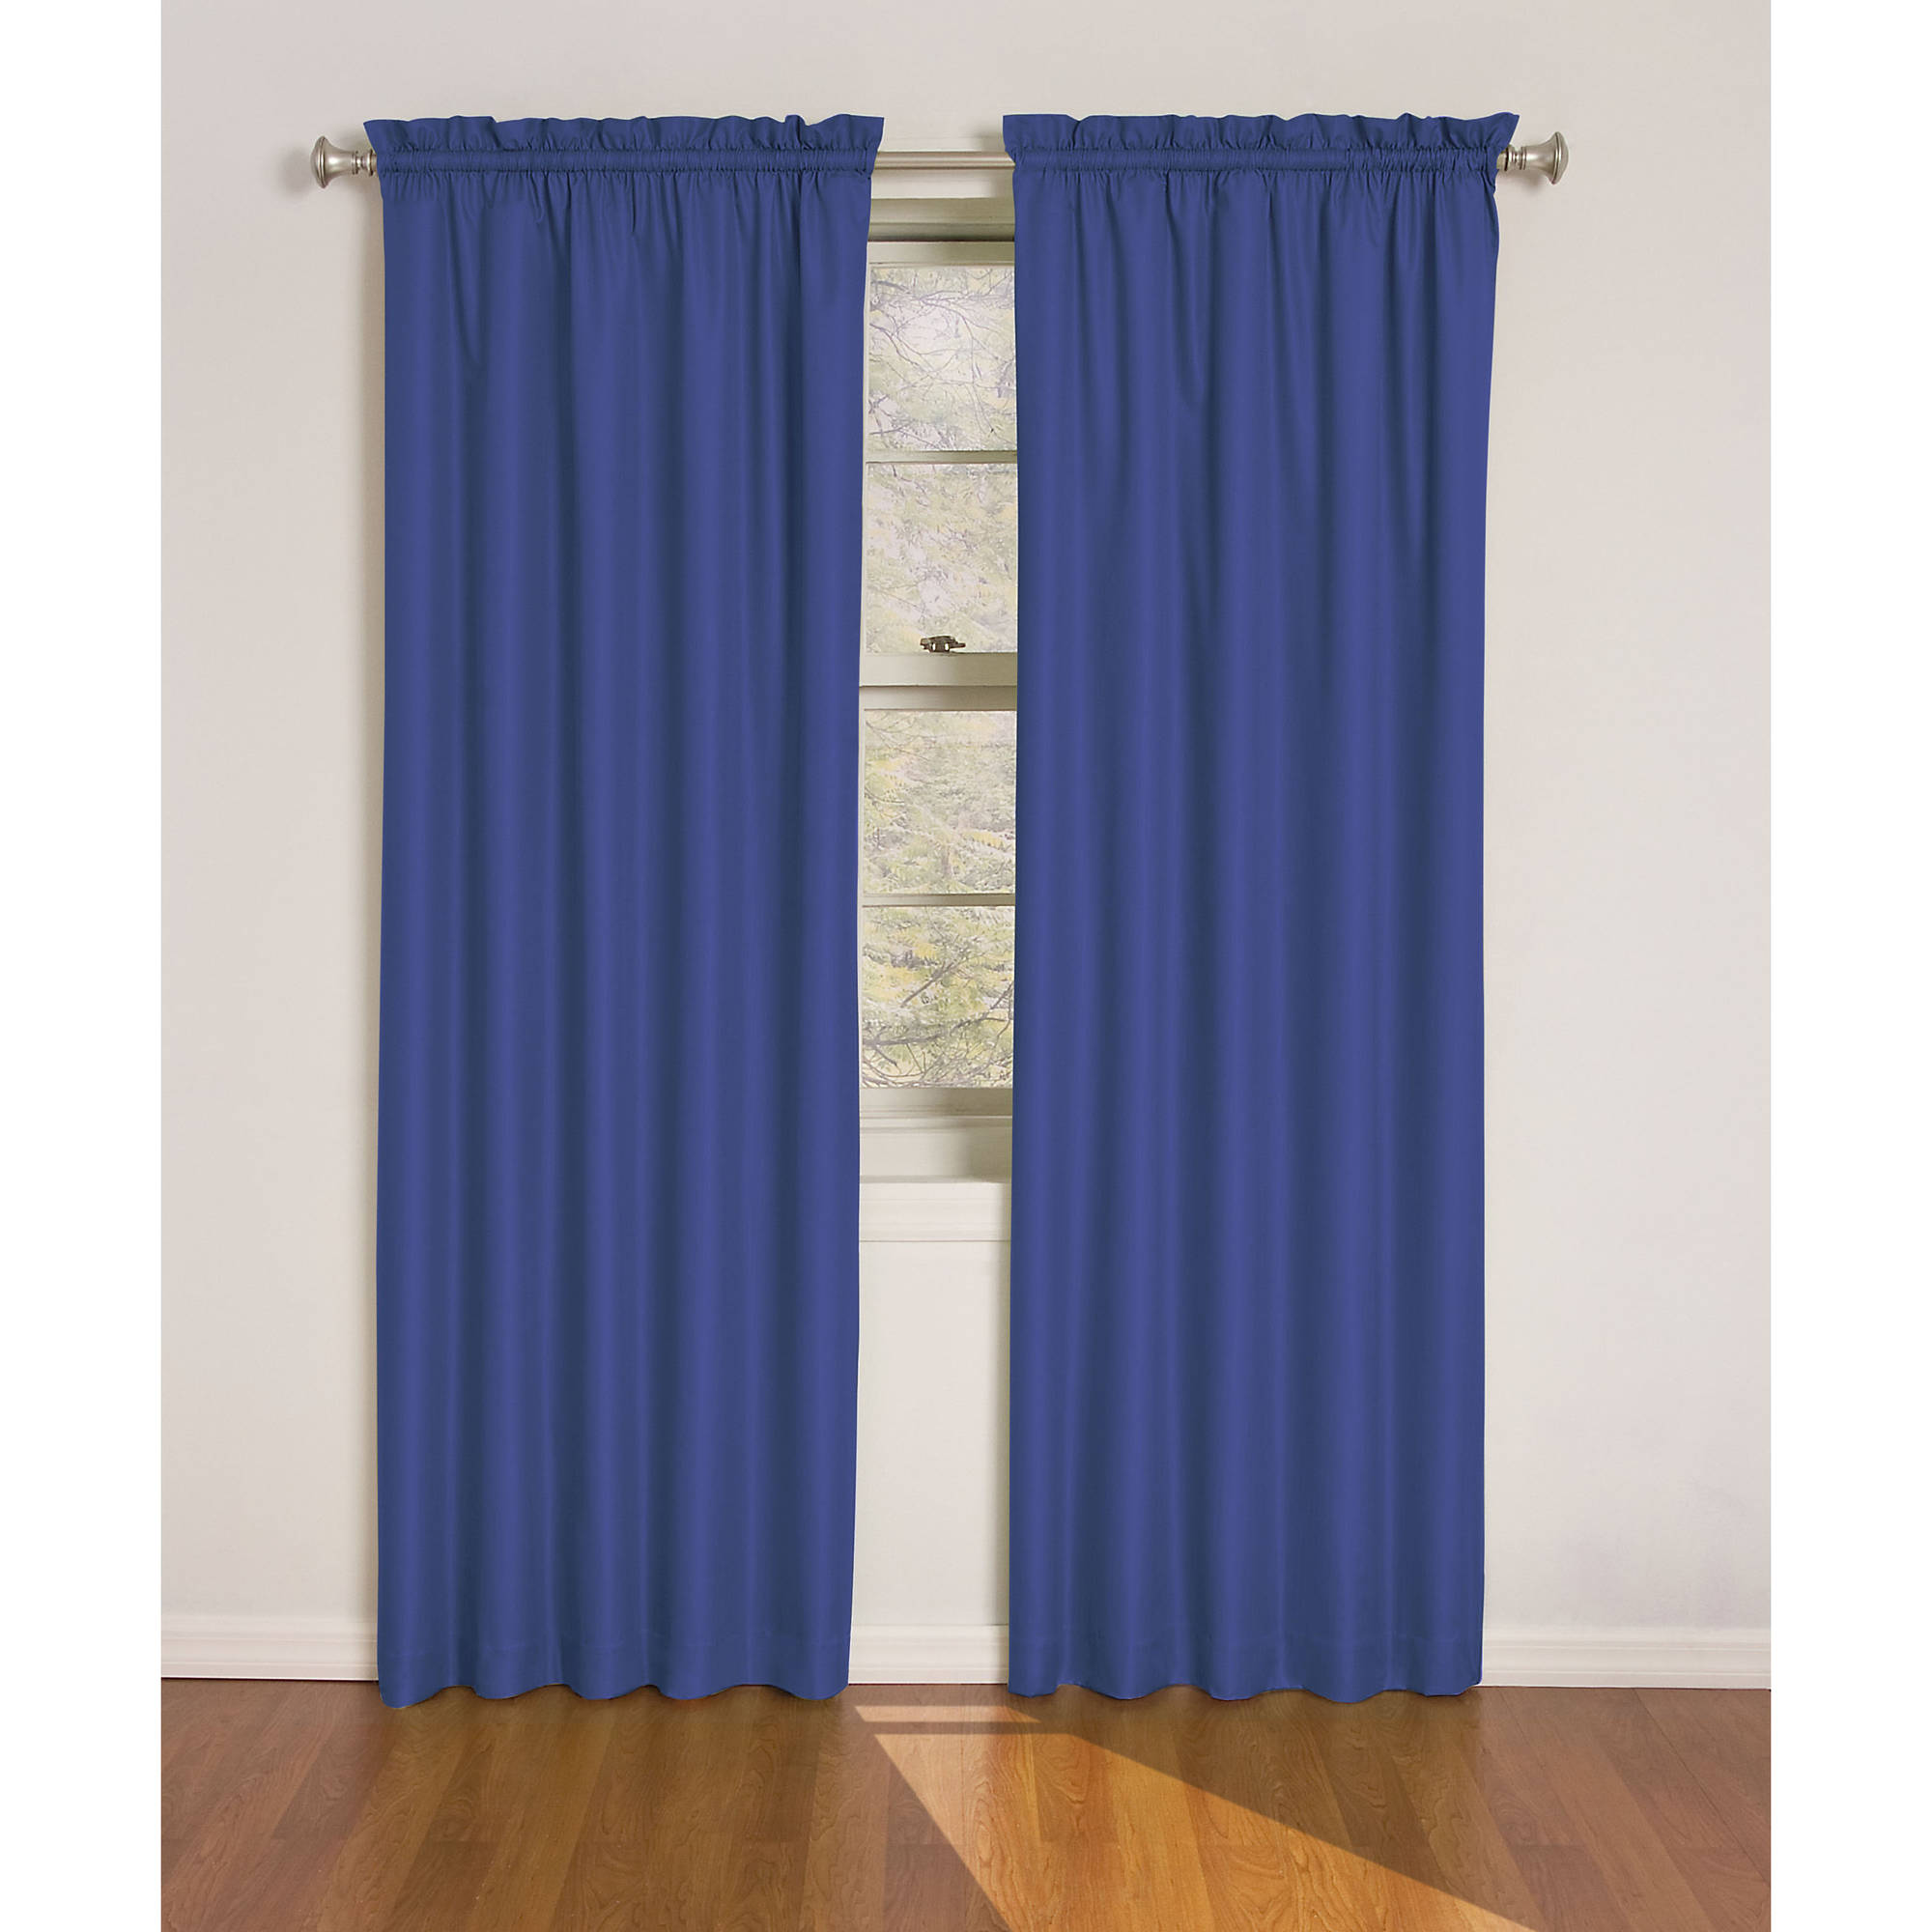 Walmart lime green curtains - Eclipse Dayton Blackout Energy Efficient Kids Bedroom Curtain Panel Walmart Com